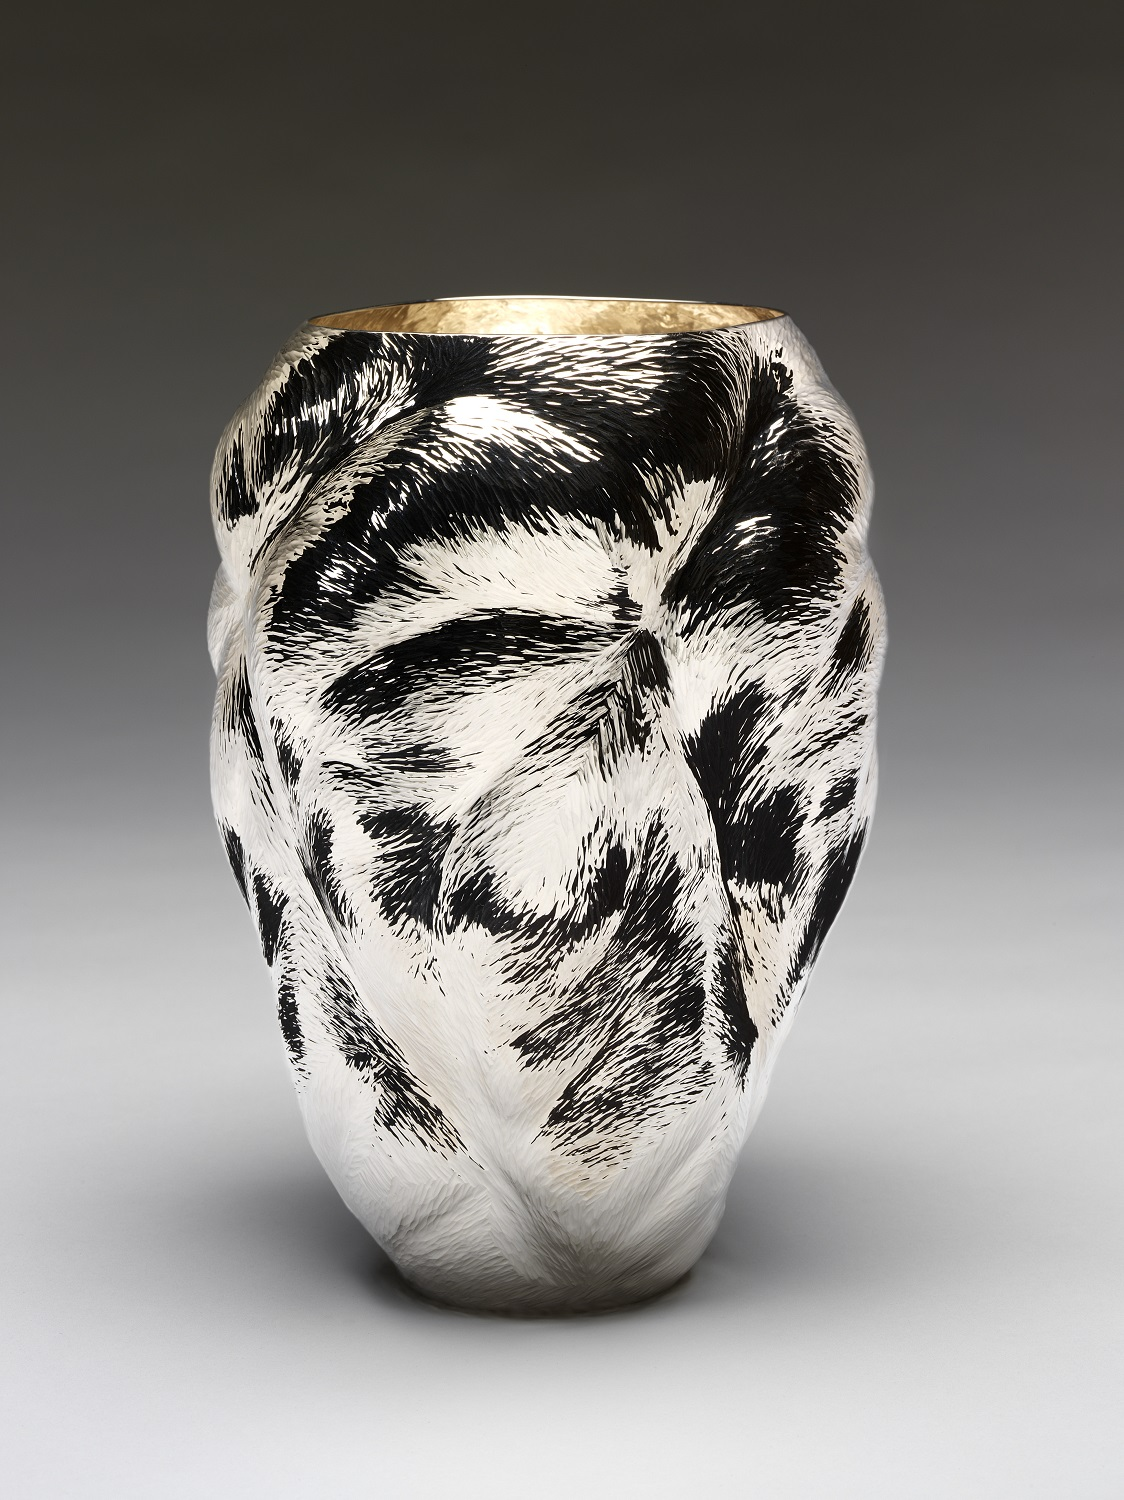 The Sparkle Vase silver, London, Ndidi Ekubia, 2012 h. 22 cm (M.21-2013)